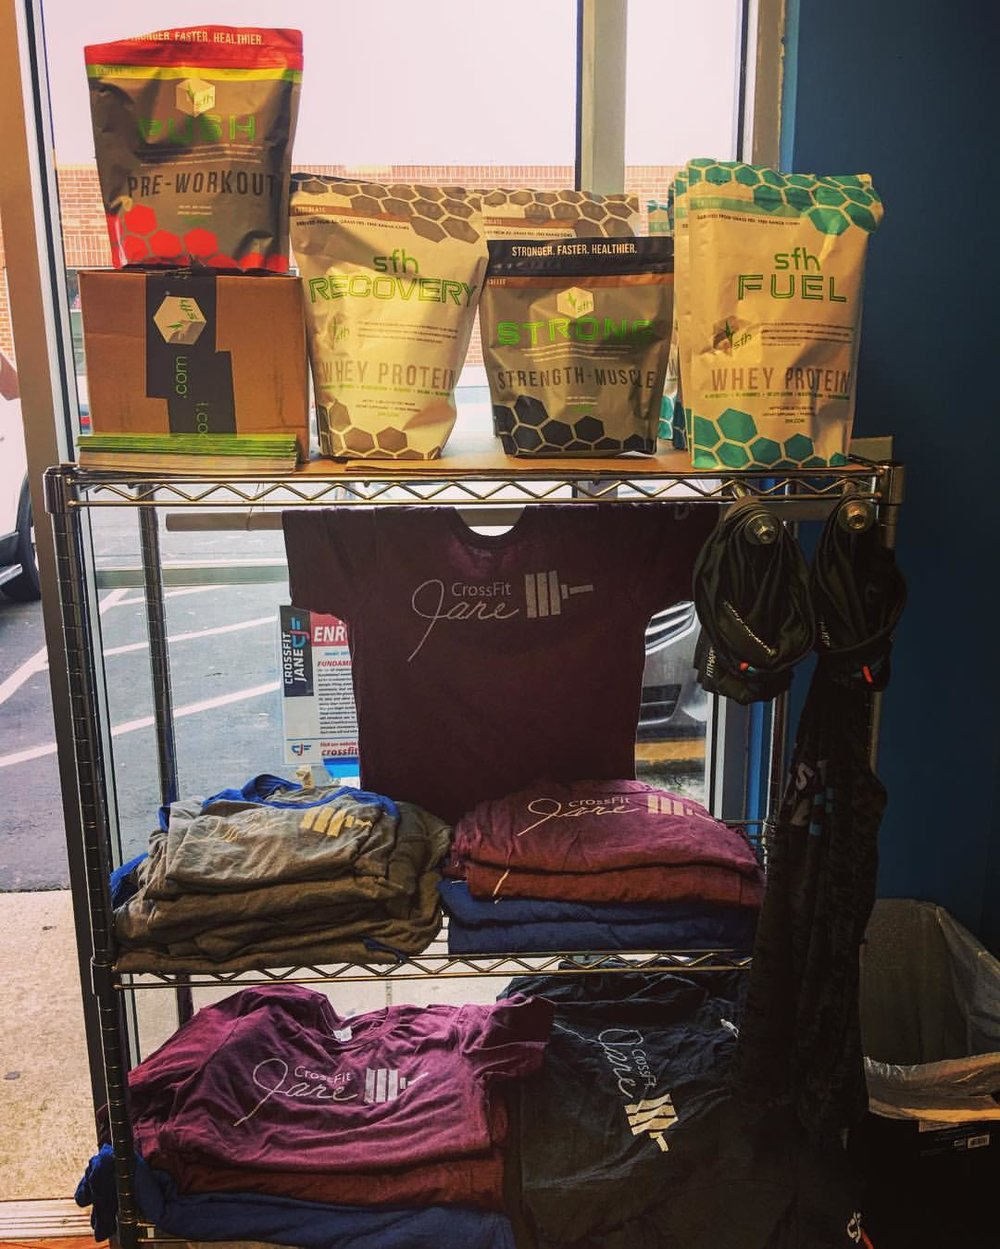 Did you miss the order deadline? Good news! We have shirts, baseball tees and tanks in stock. We are also fully stocked with SFH products, including fish oil.